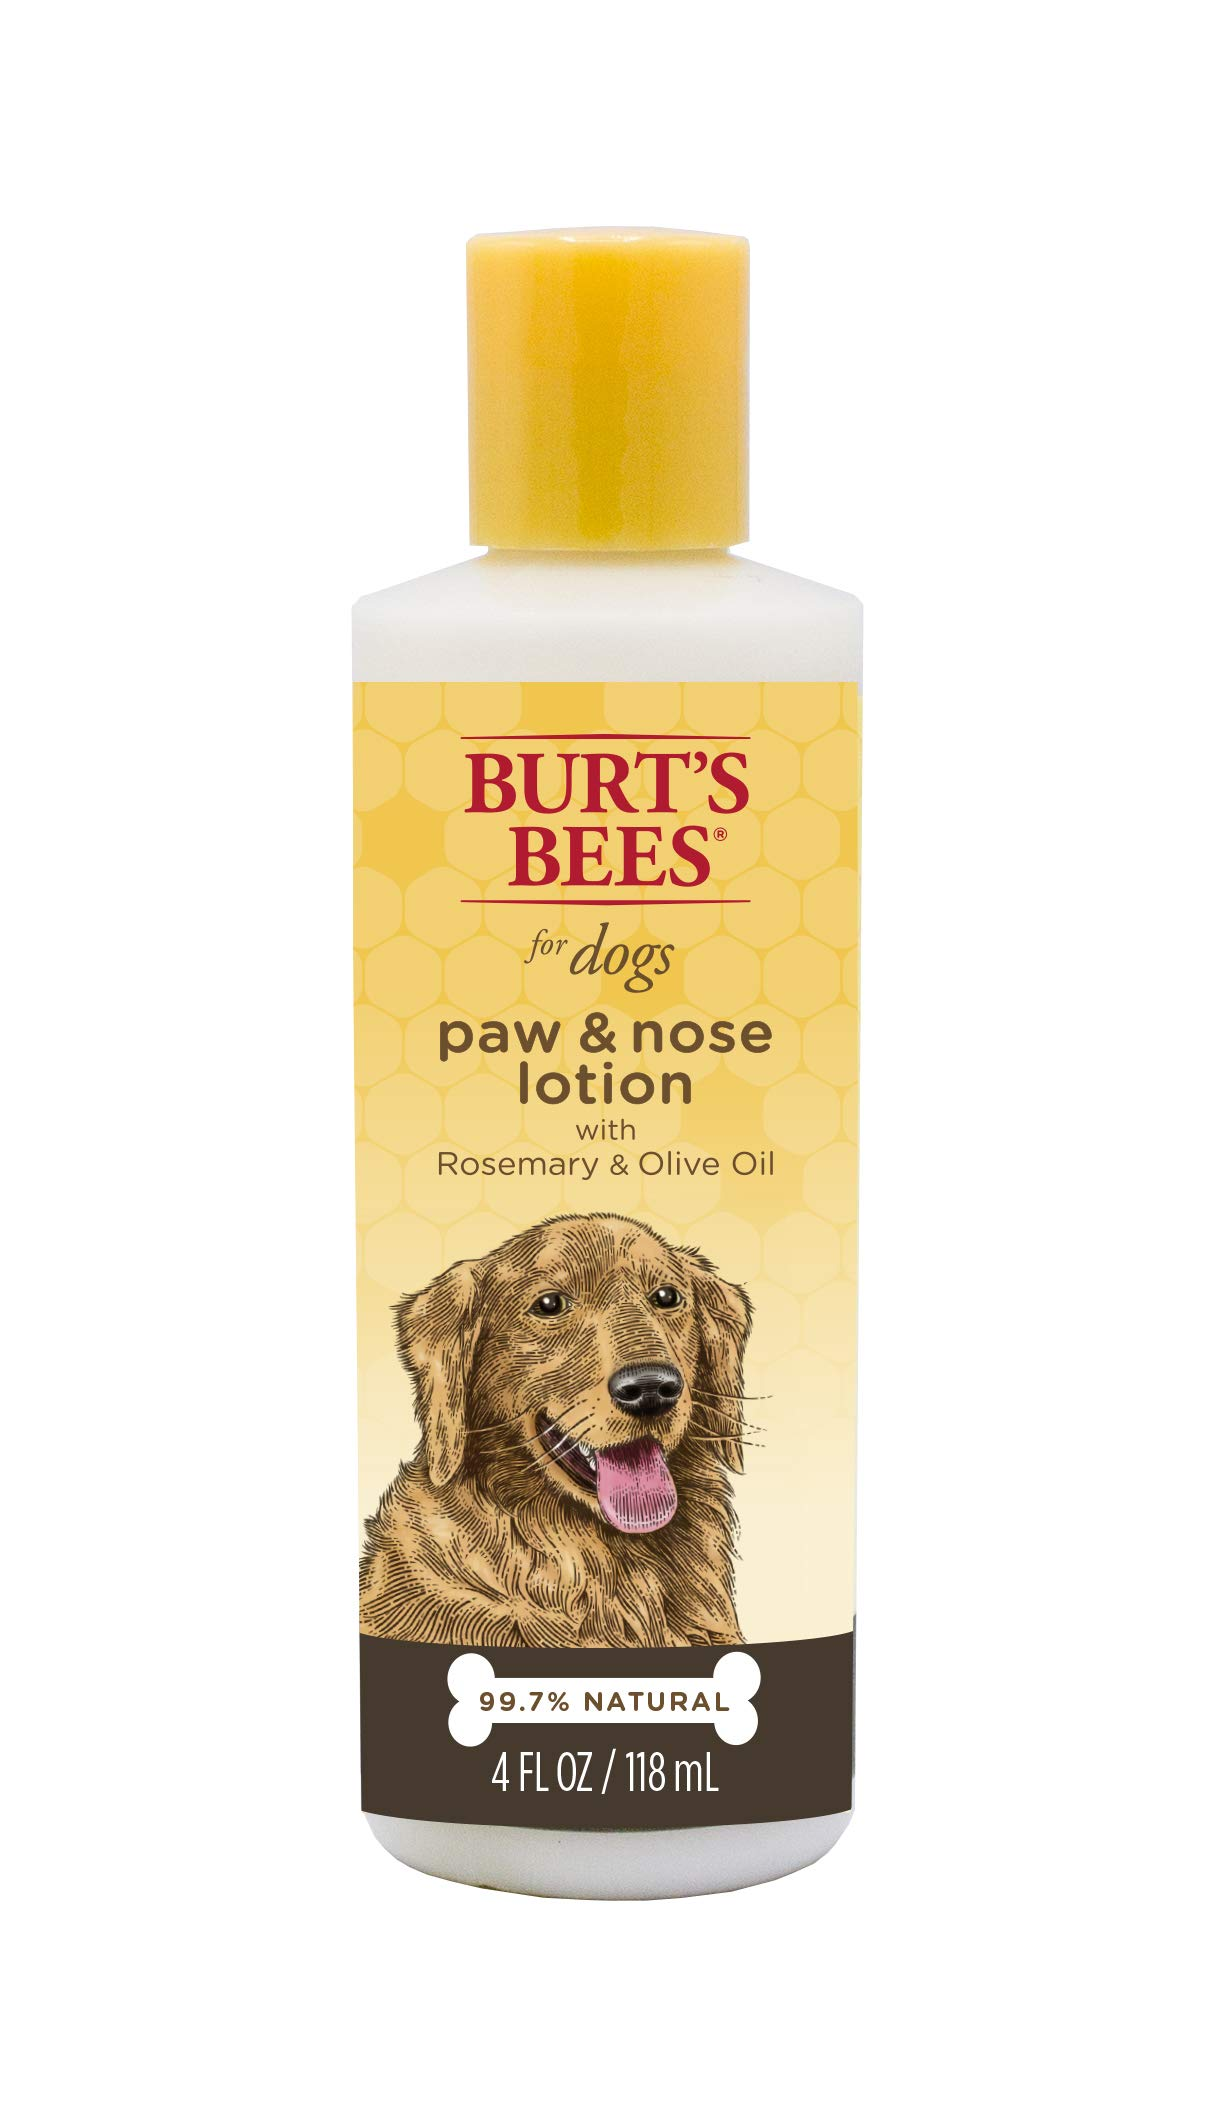 Burt's Bees for Dogs All-Natural Paw & Nose Lotion with Rosemary & Olive Oil | For All Dogs and Puppies, 4 Ounces - 2 Pack